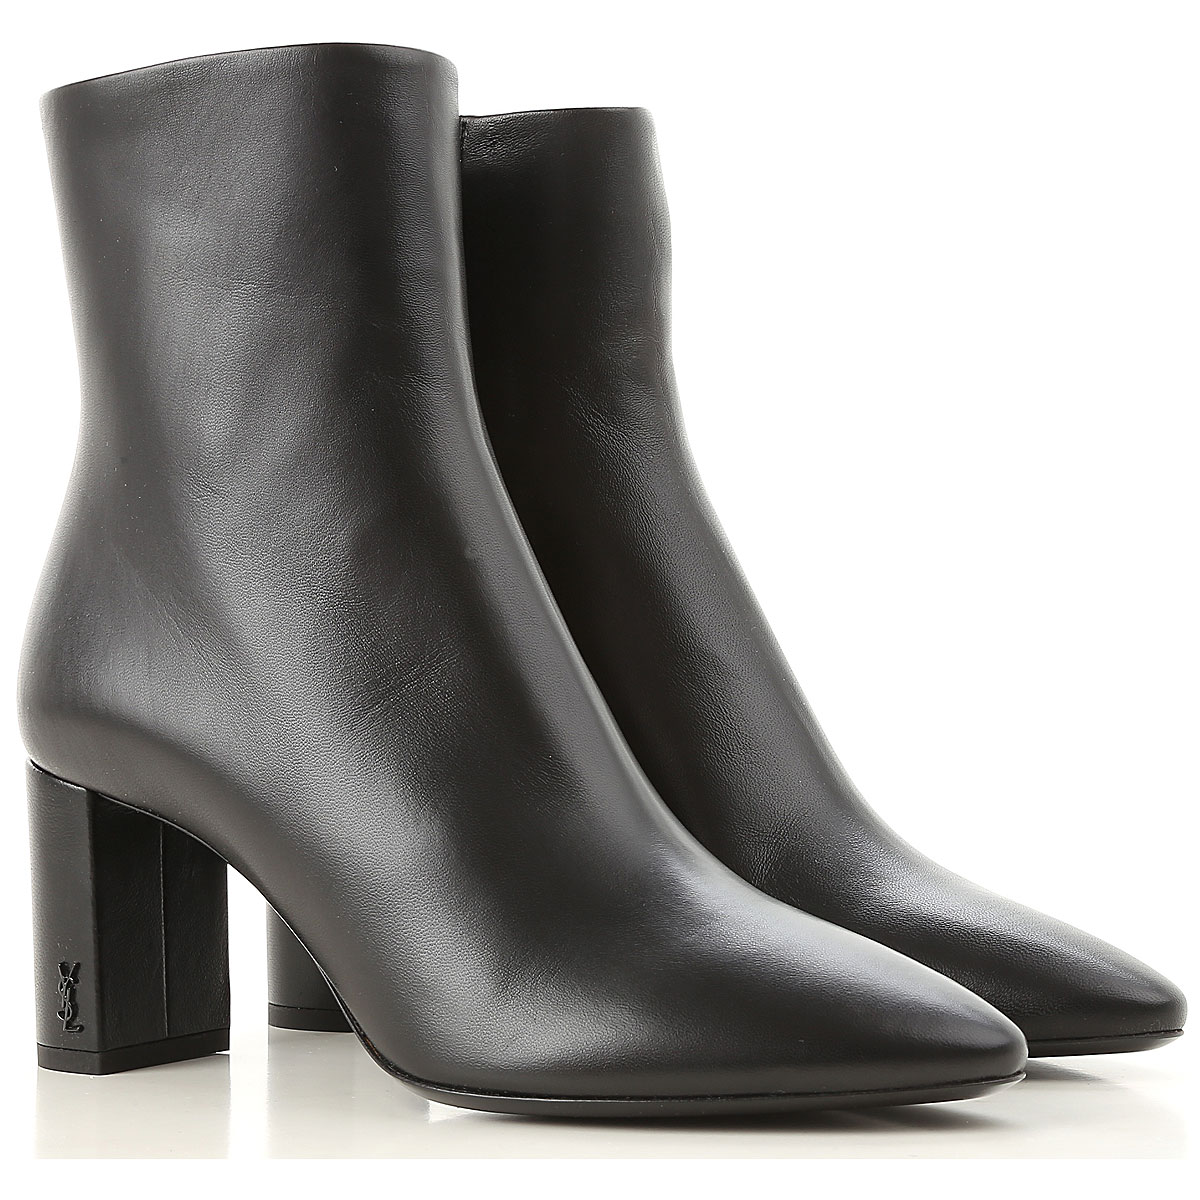 Yves Saint Laurent Boots for Women, Booties On Sale in Outlet, Black, Leather, 2019, 10 5 5.5 6 8 8.5 9 9.5